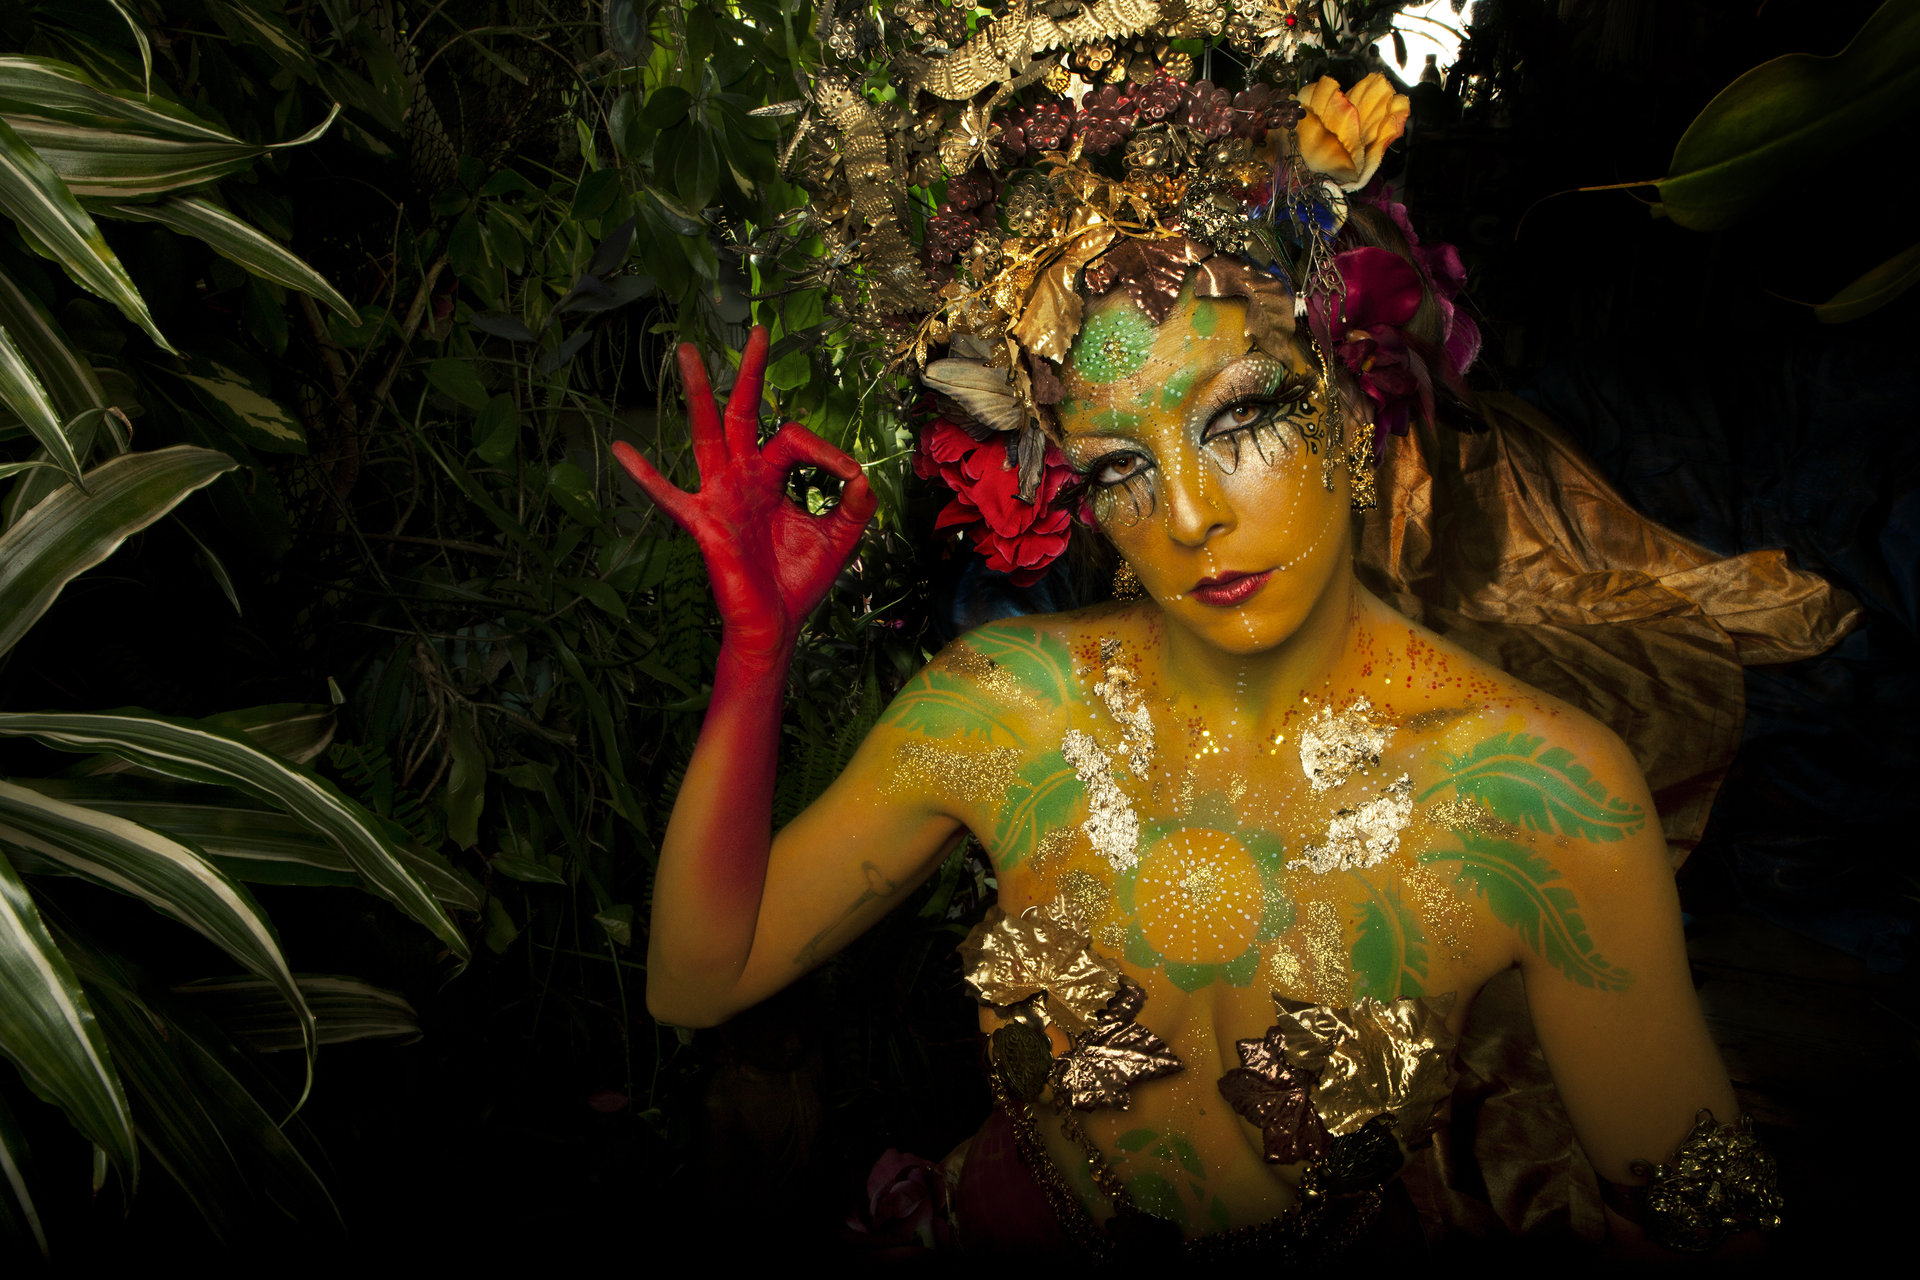 Mythological creatures made in collaboration with body painter  Piyali Banerji   Involvement: Art direction, photography, set design, post production